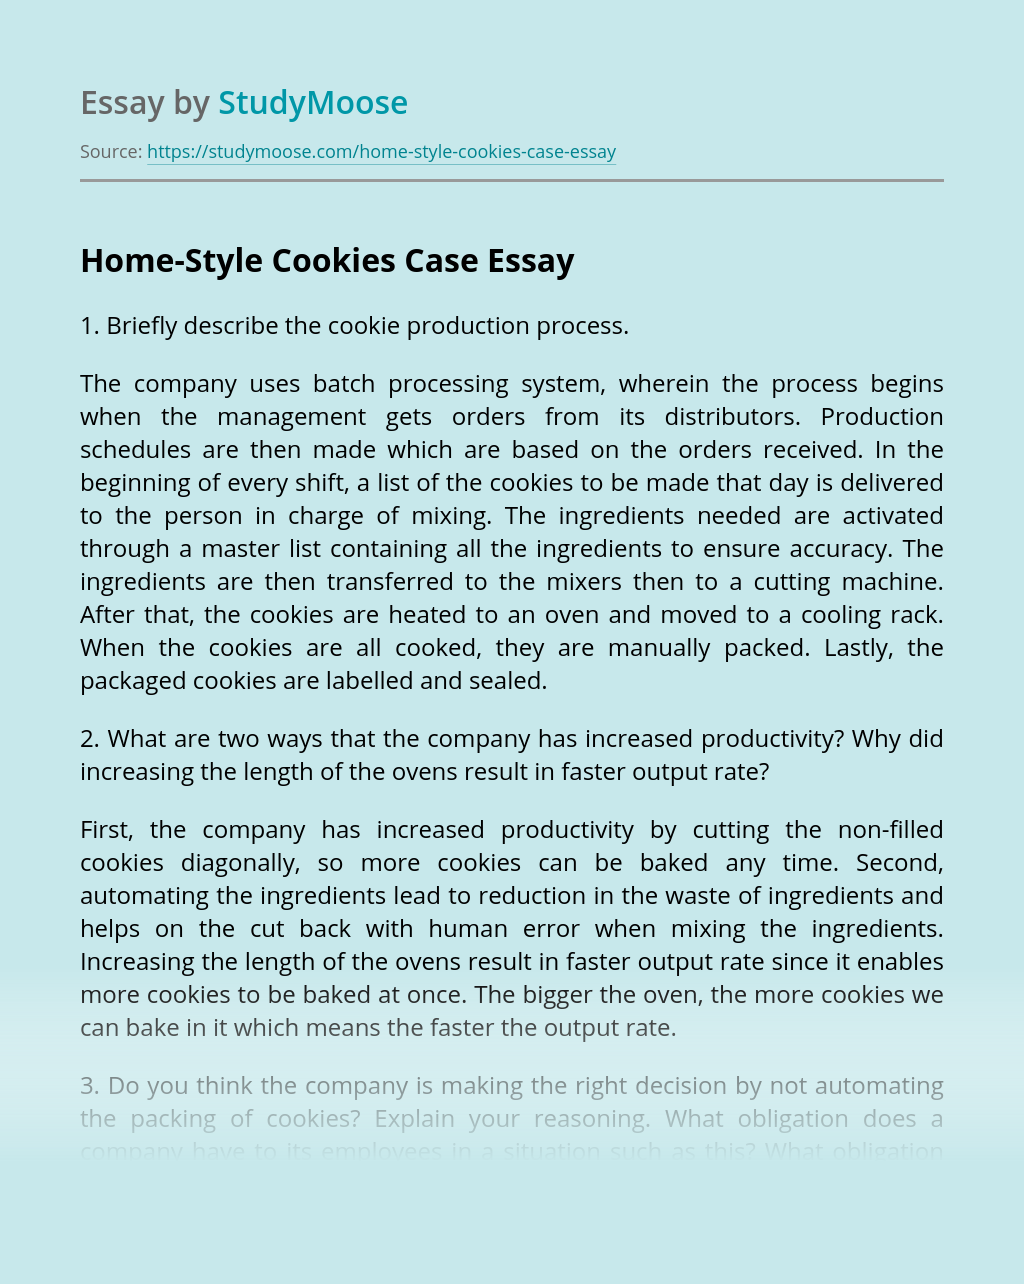 Home-Style Cookies Case